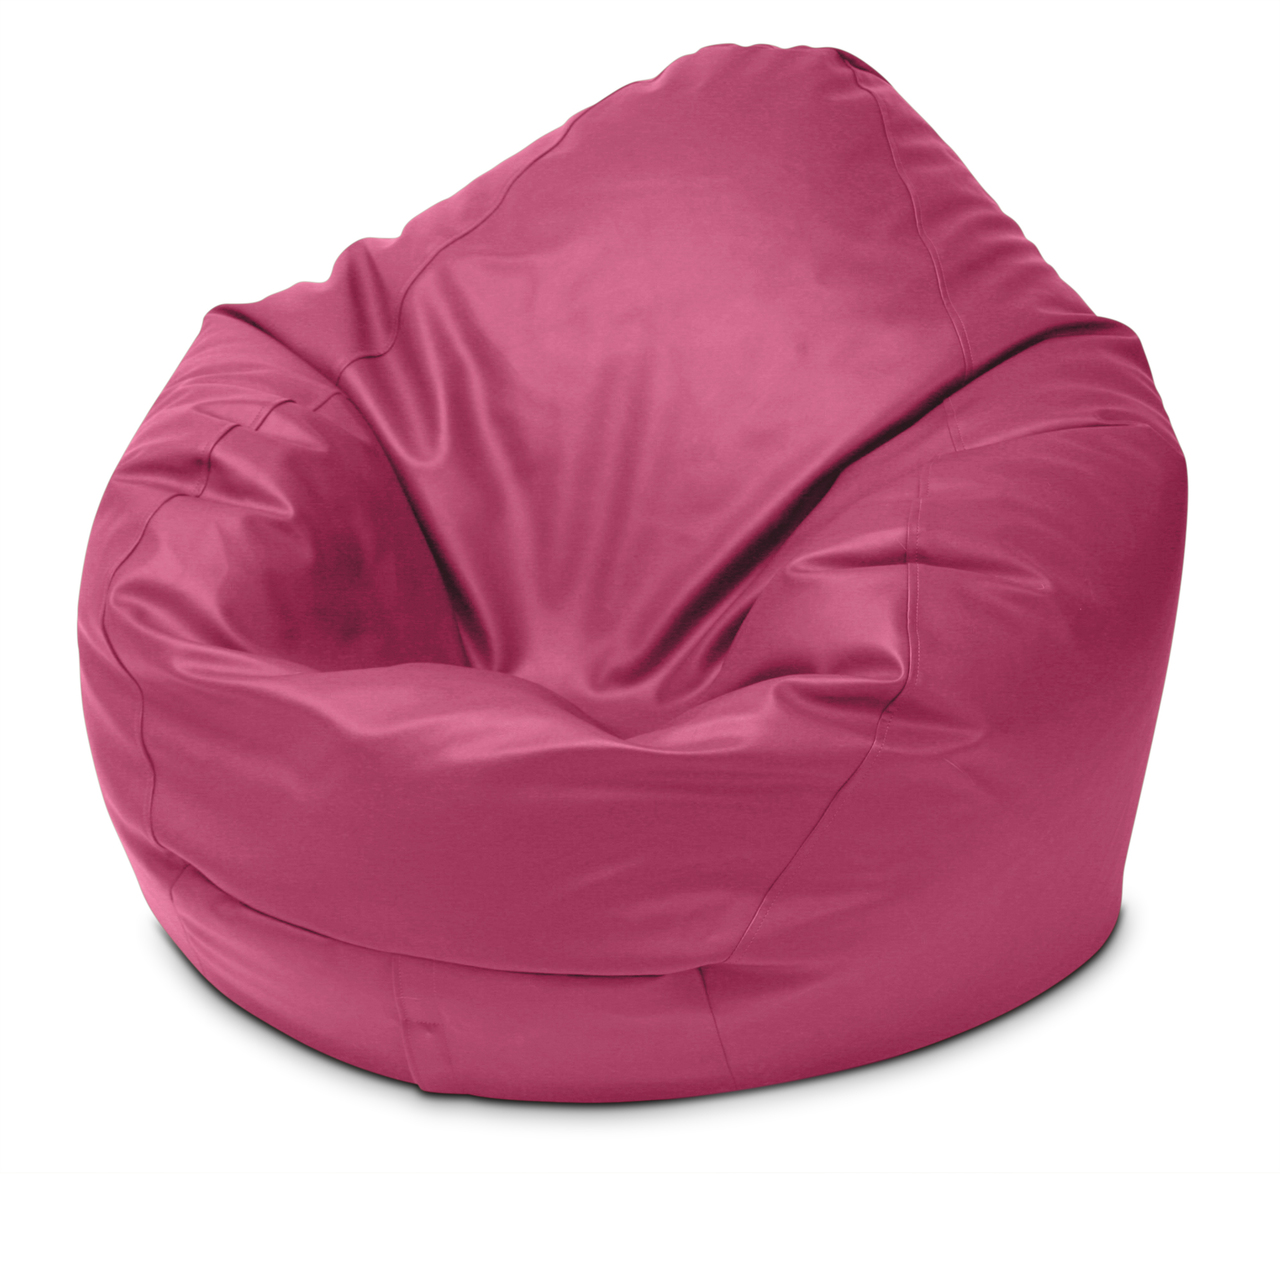 Classic King Size Bean Bag in flamingo